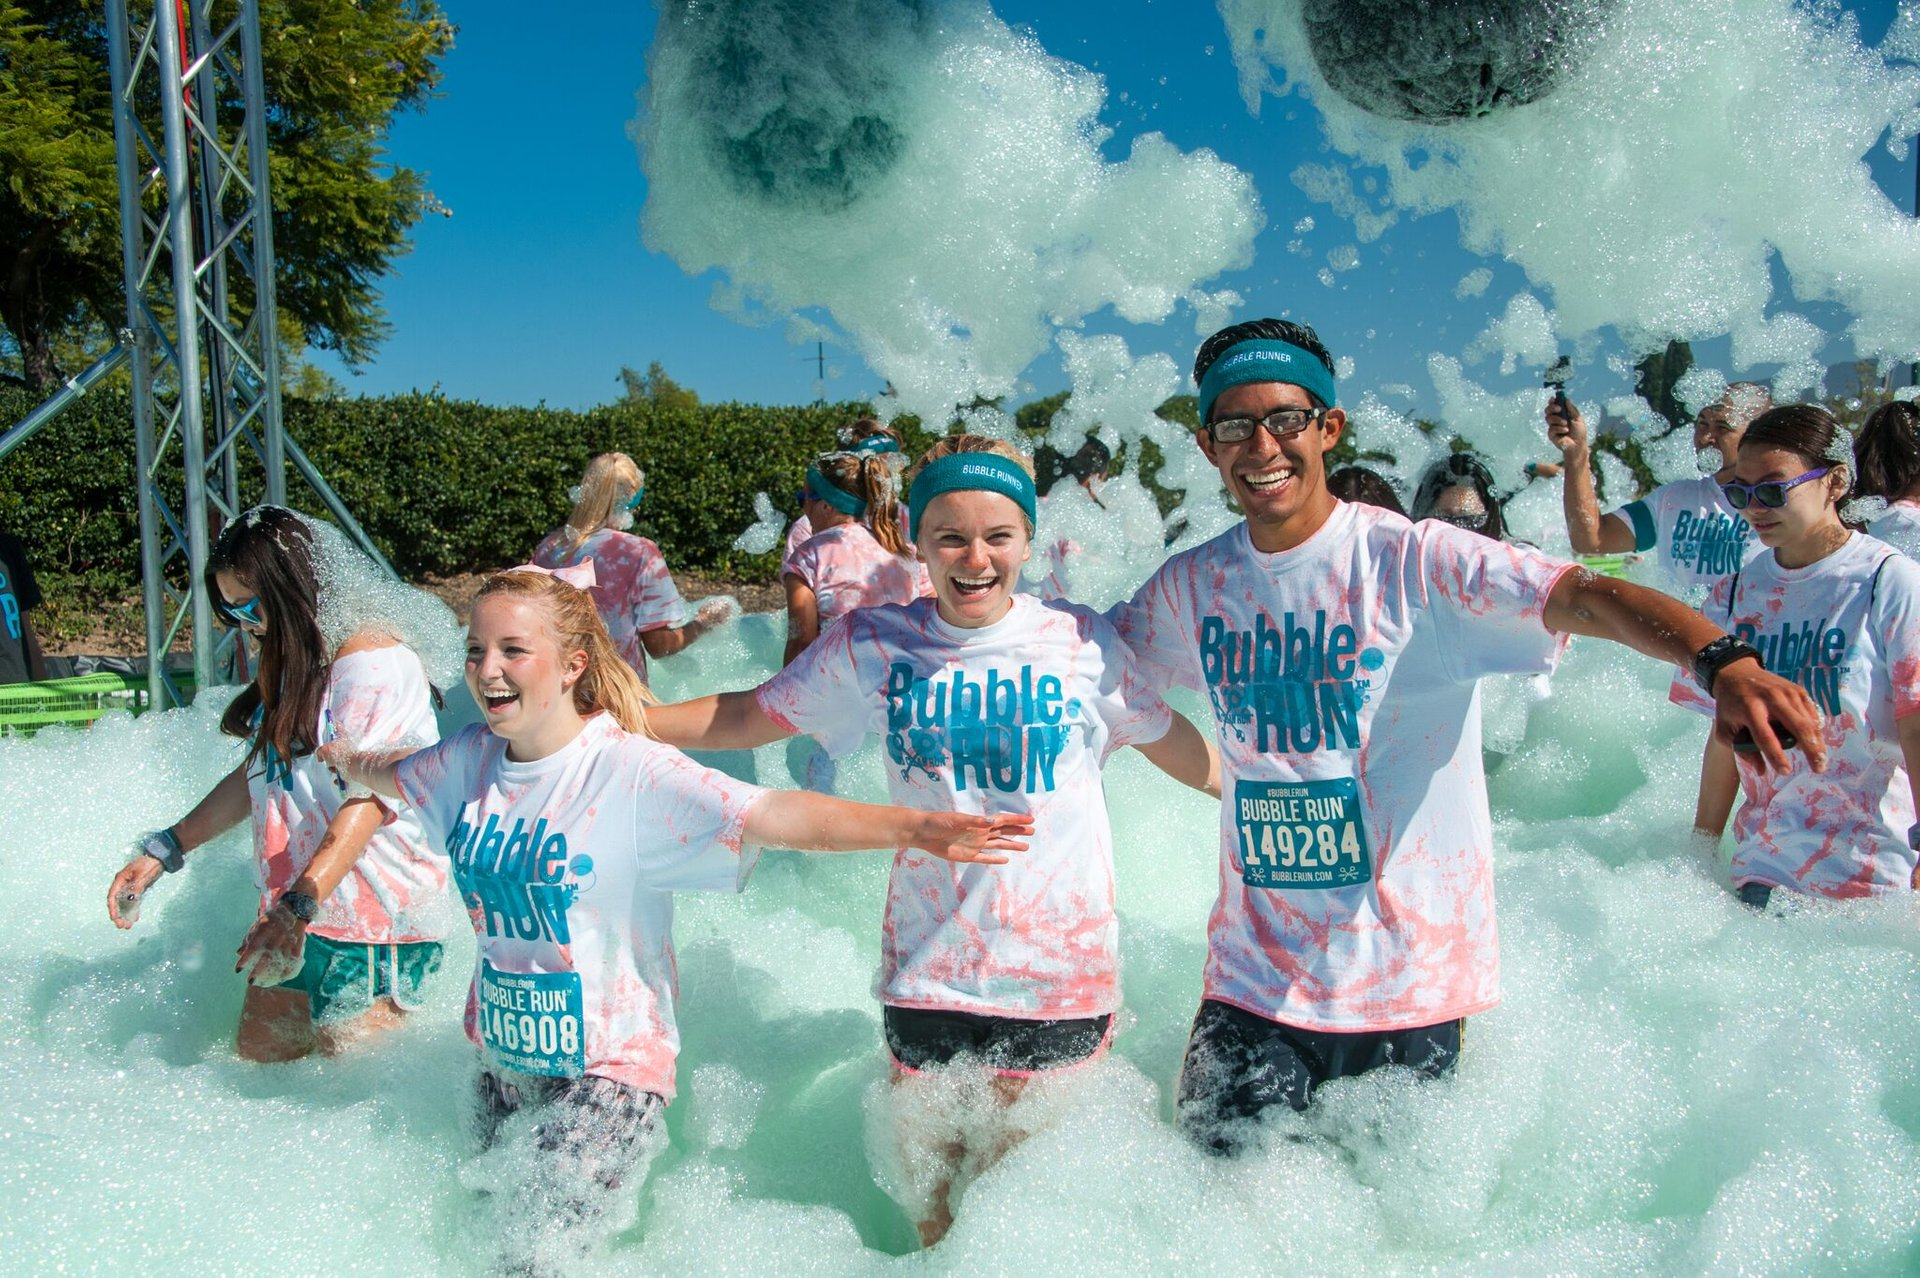 Best time for Bubble Run in San Diego 2020